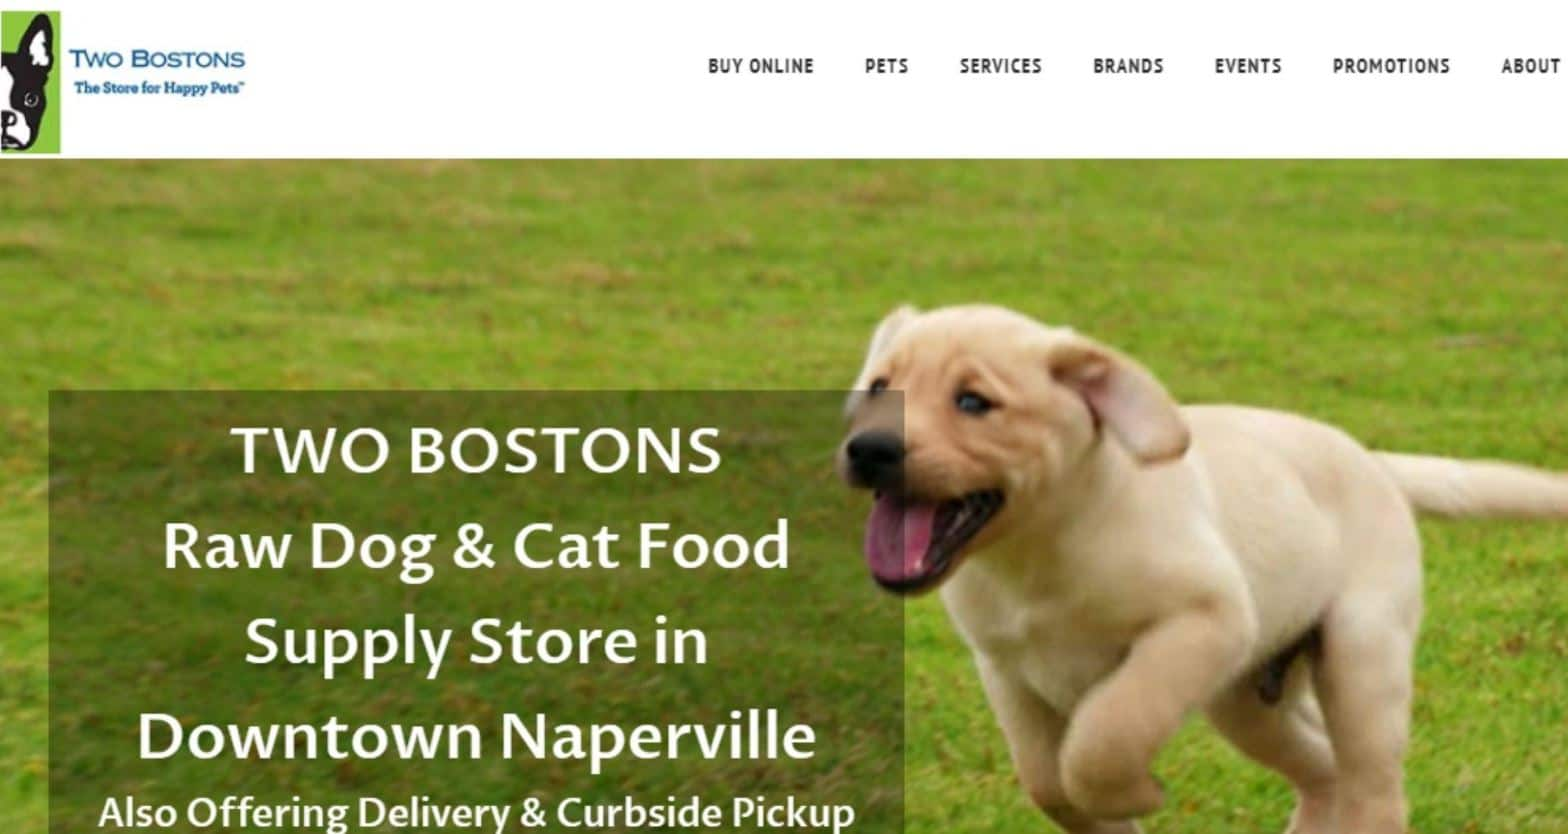 Two Bostons as the 10th best delivery pet food